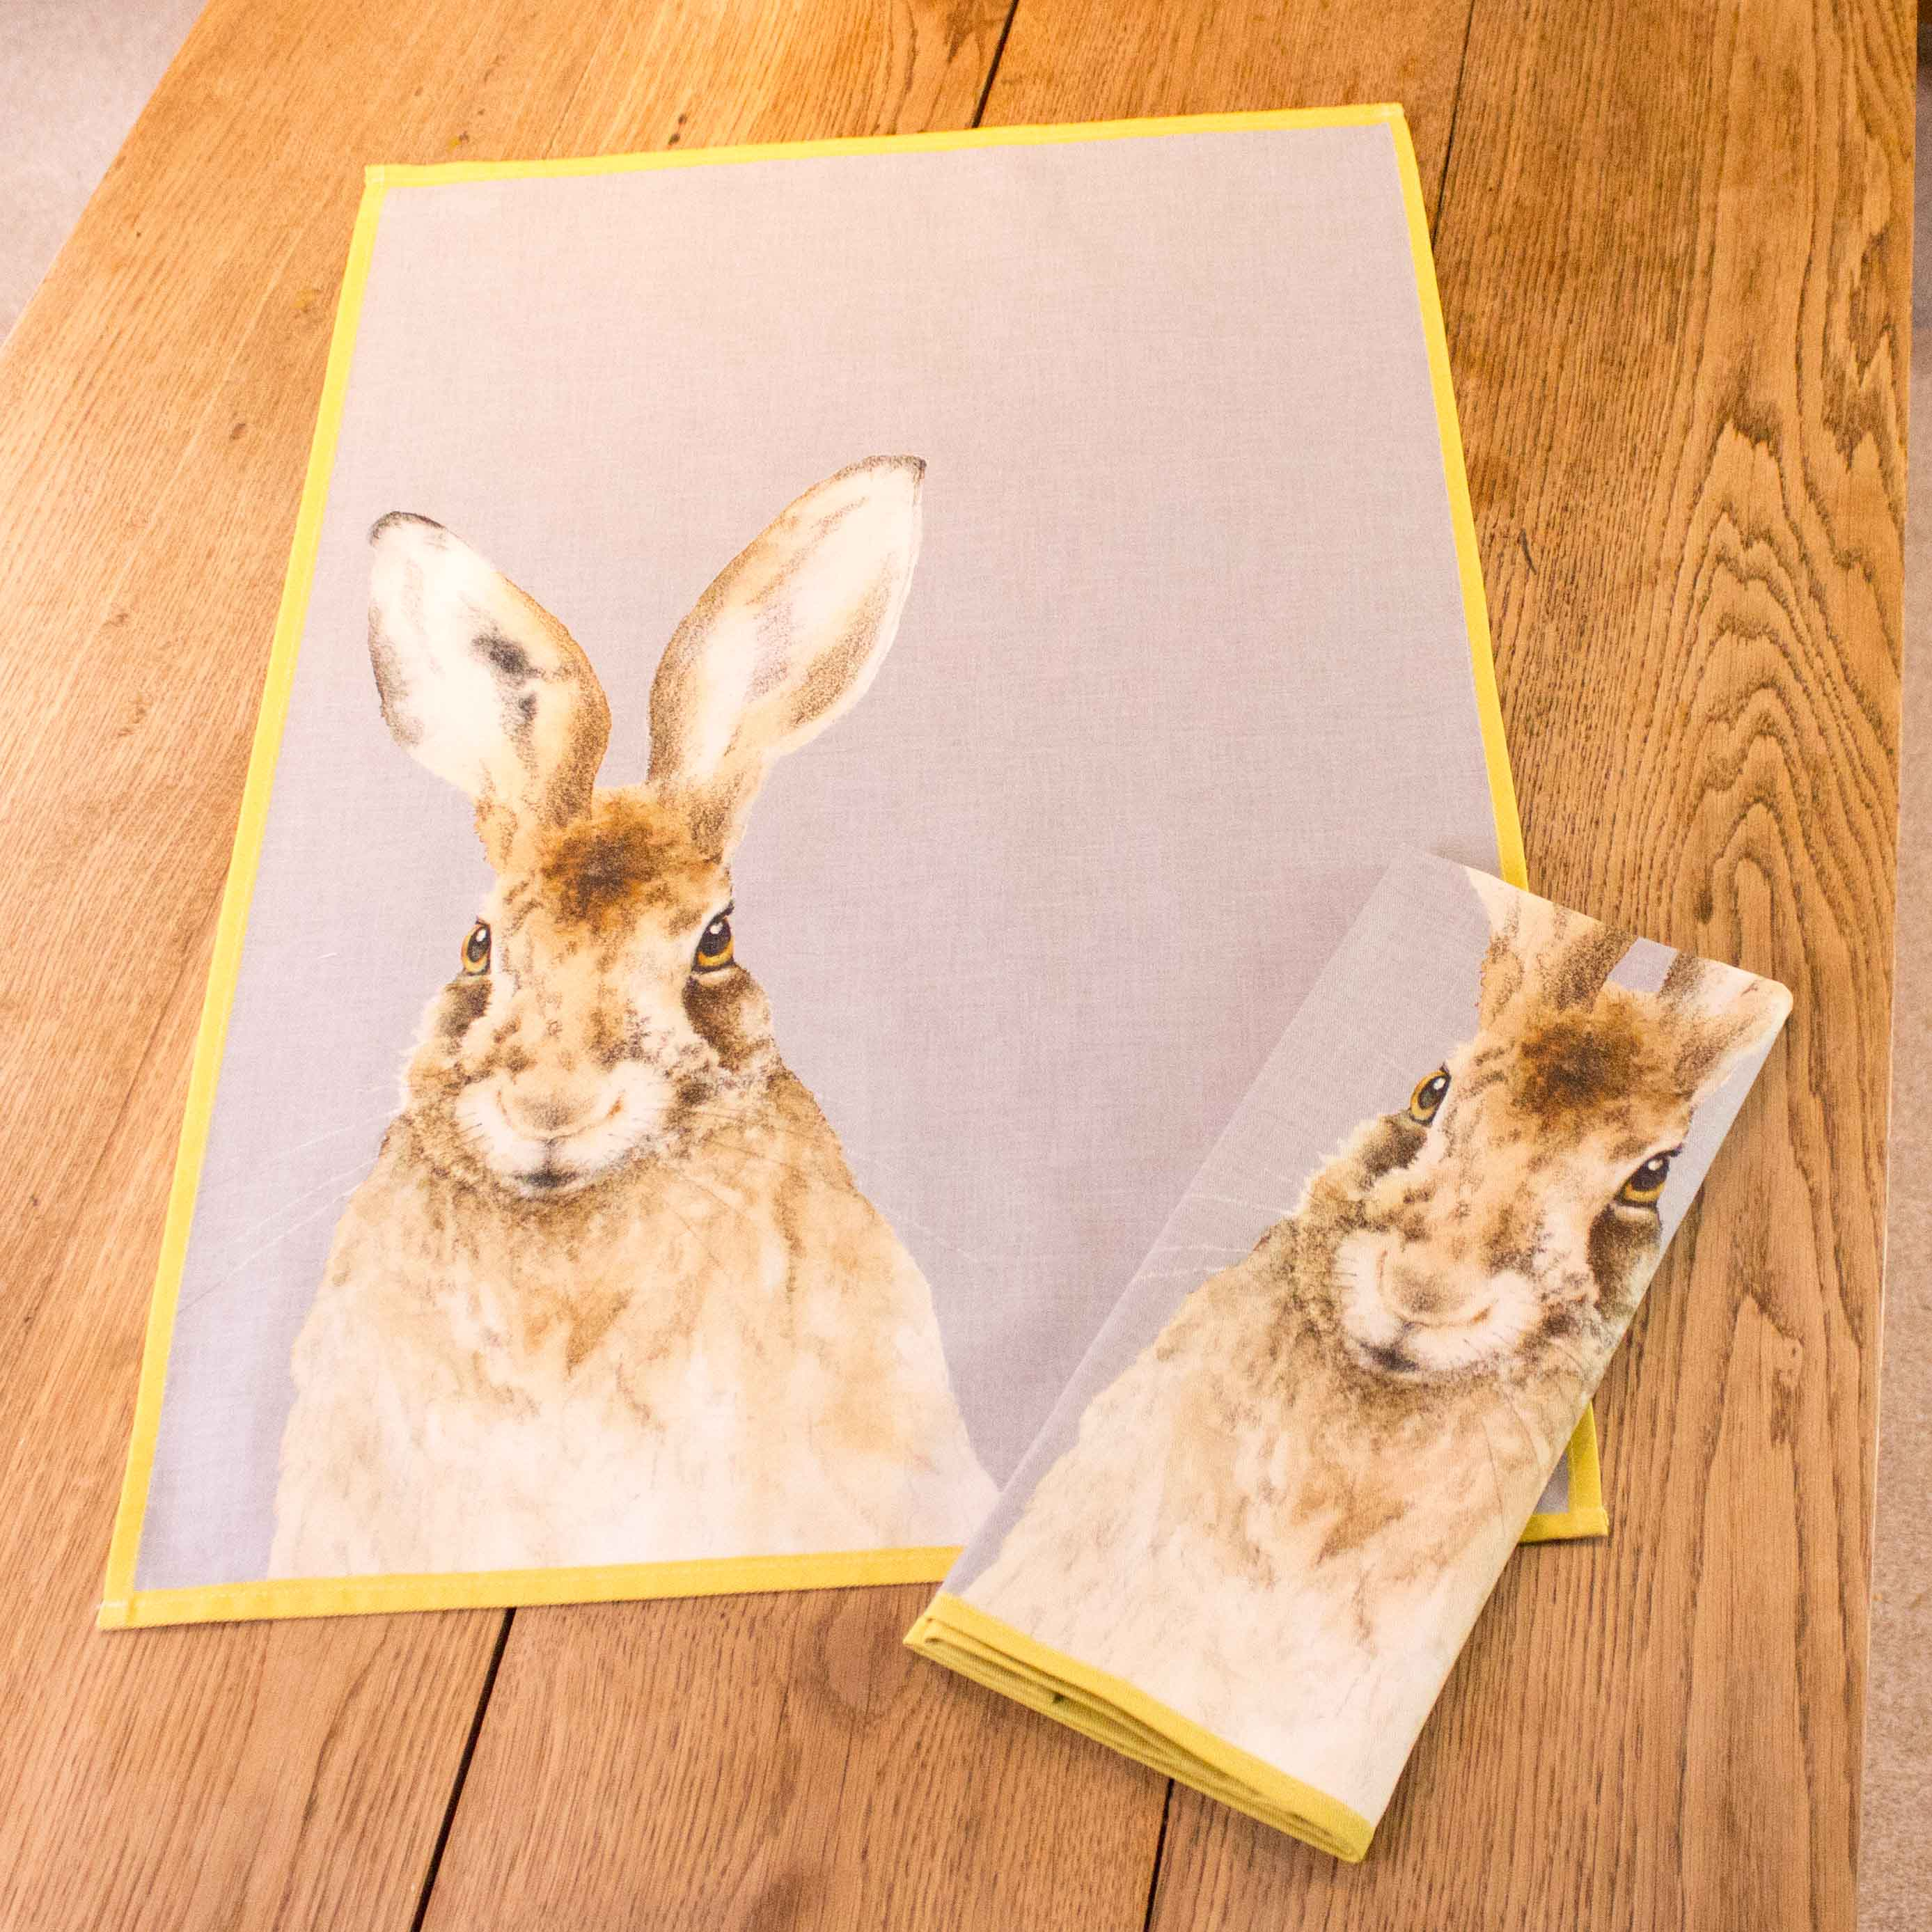 Tea towel featuring a portrait of a hare